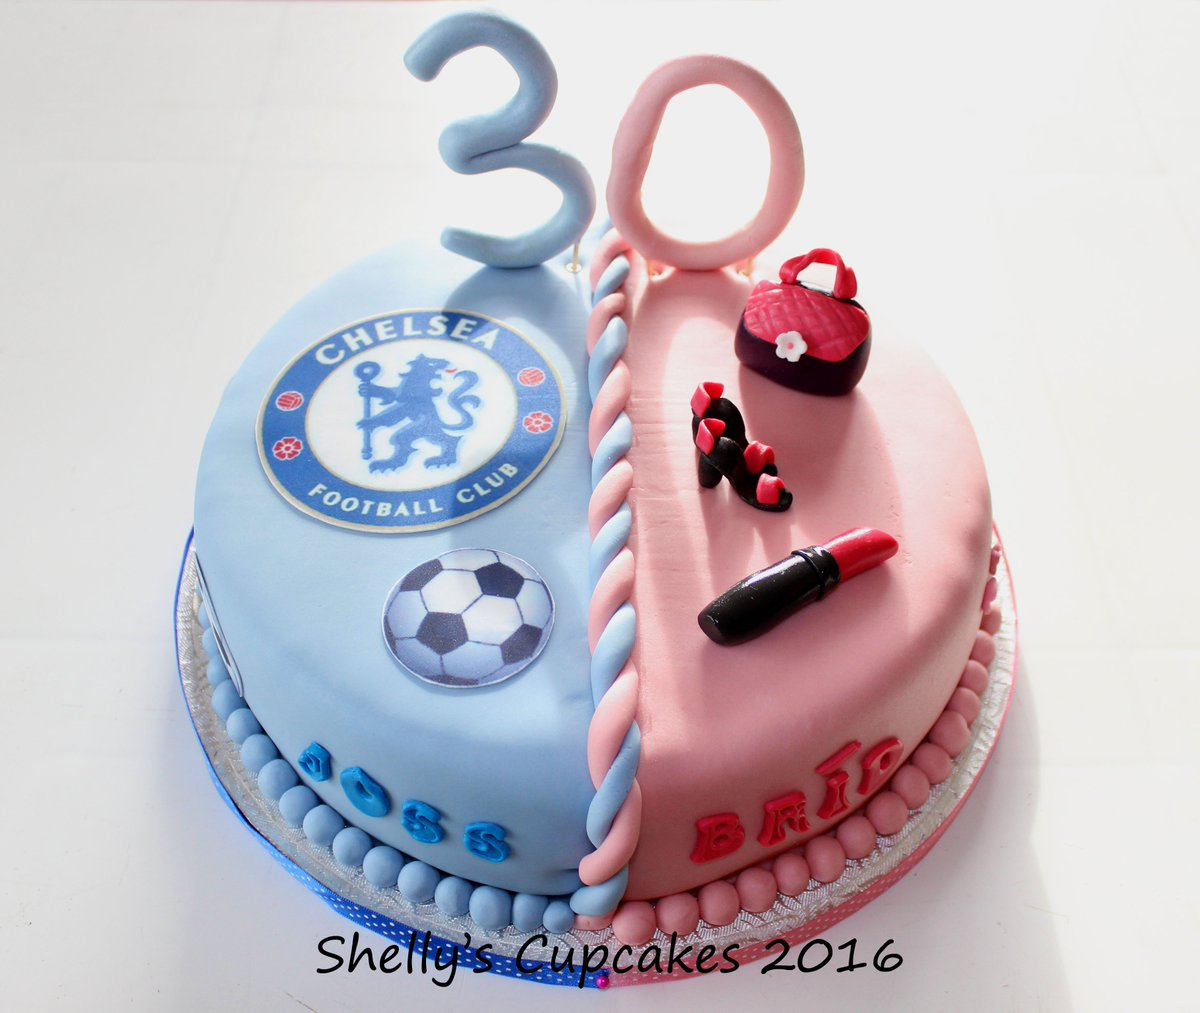 Pleasant Shellys Cup Cakes On Twitter Twins 30Th Birthday Cake Chelsea Funny Birthday Cards Online Unhofree Goldxyz